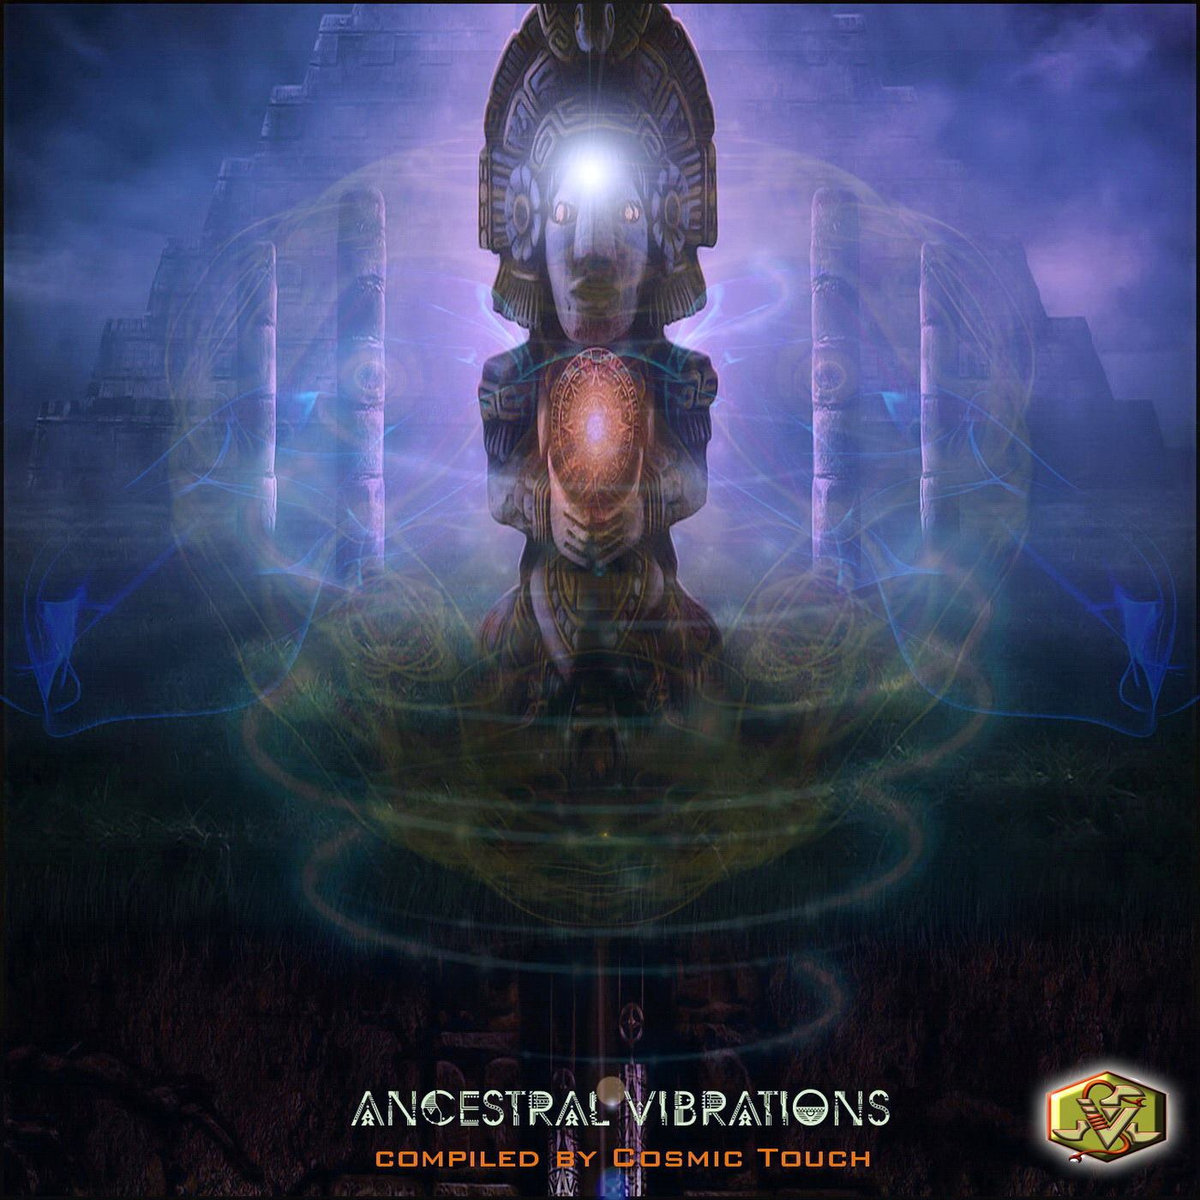 Ancestral Vibrations